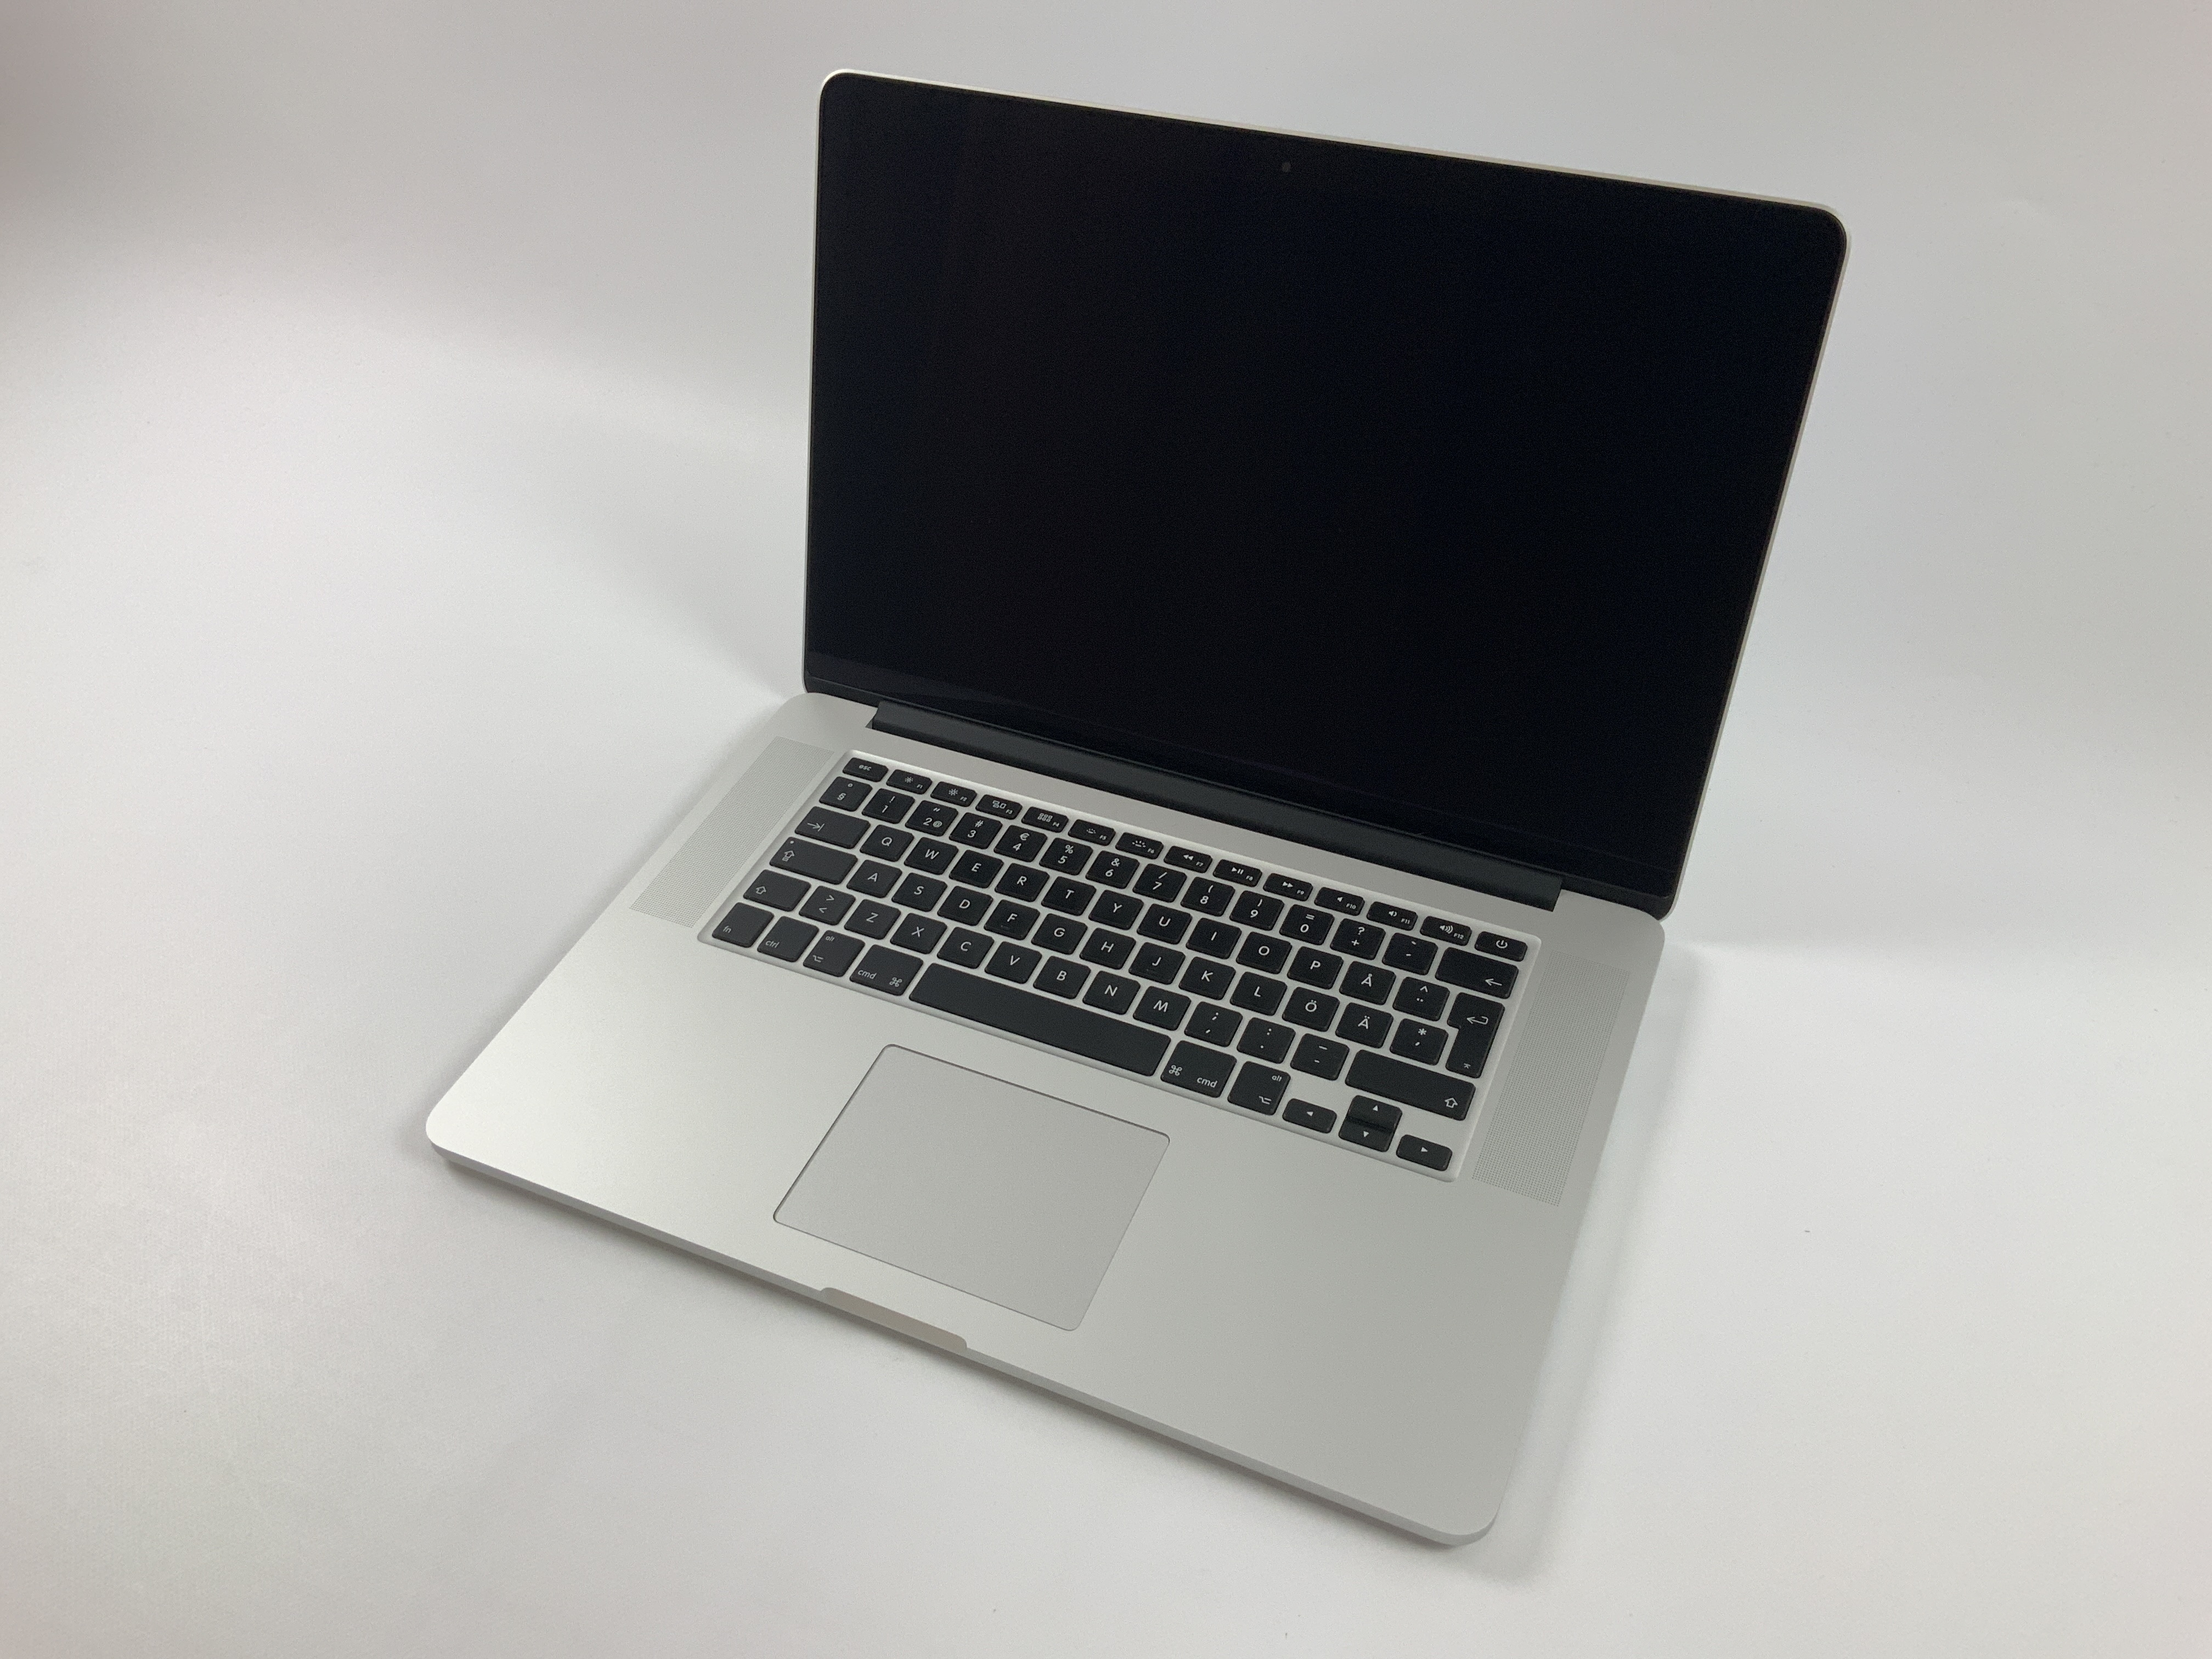 "MacBook Pro Retina 15"" Mid 2015 (Intel Quad-Core i7 2.8 GHz 16 GB RAM 256 GB SSD), Intel Quad-Core i7 2.8 GHz, 16 GB RAM, 256 GB SSD, bild 1"